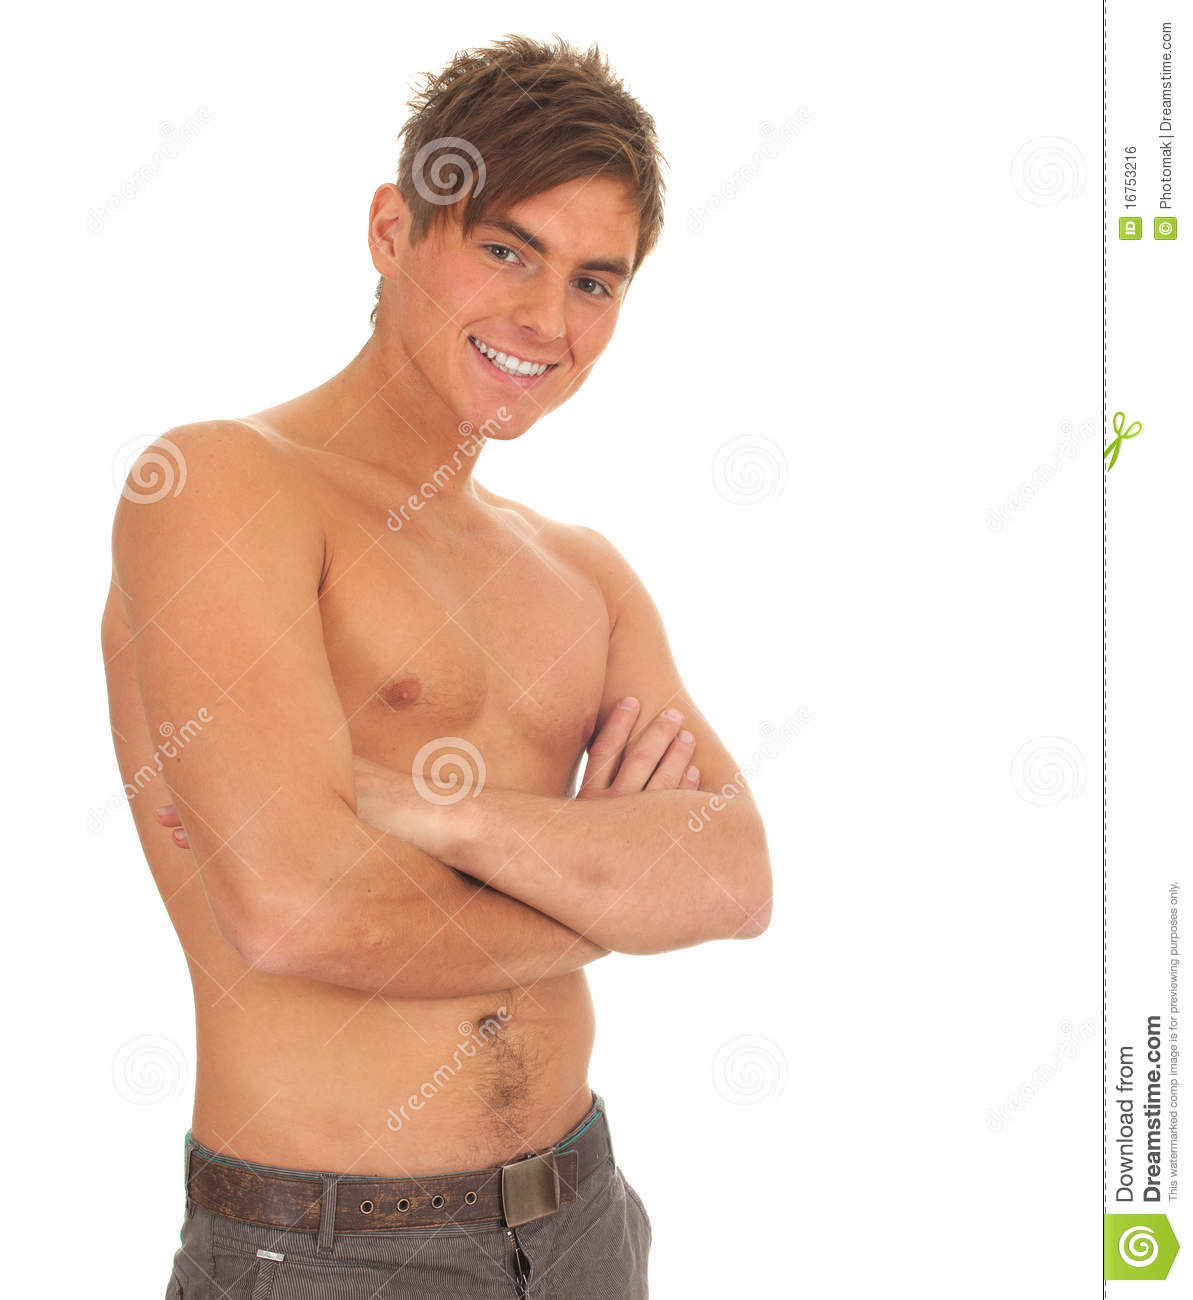 shirtless pics online dating Okcupid did an analysis of how men posting shirtless pictures fare the conventional wisdom is that they should fare worse and that posting them is a bad idea the results indicated that not only do they get more frequent replies, they often have.